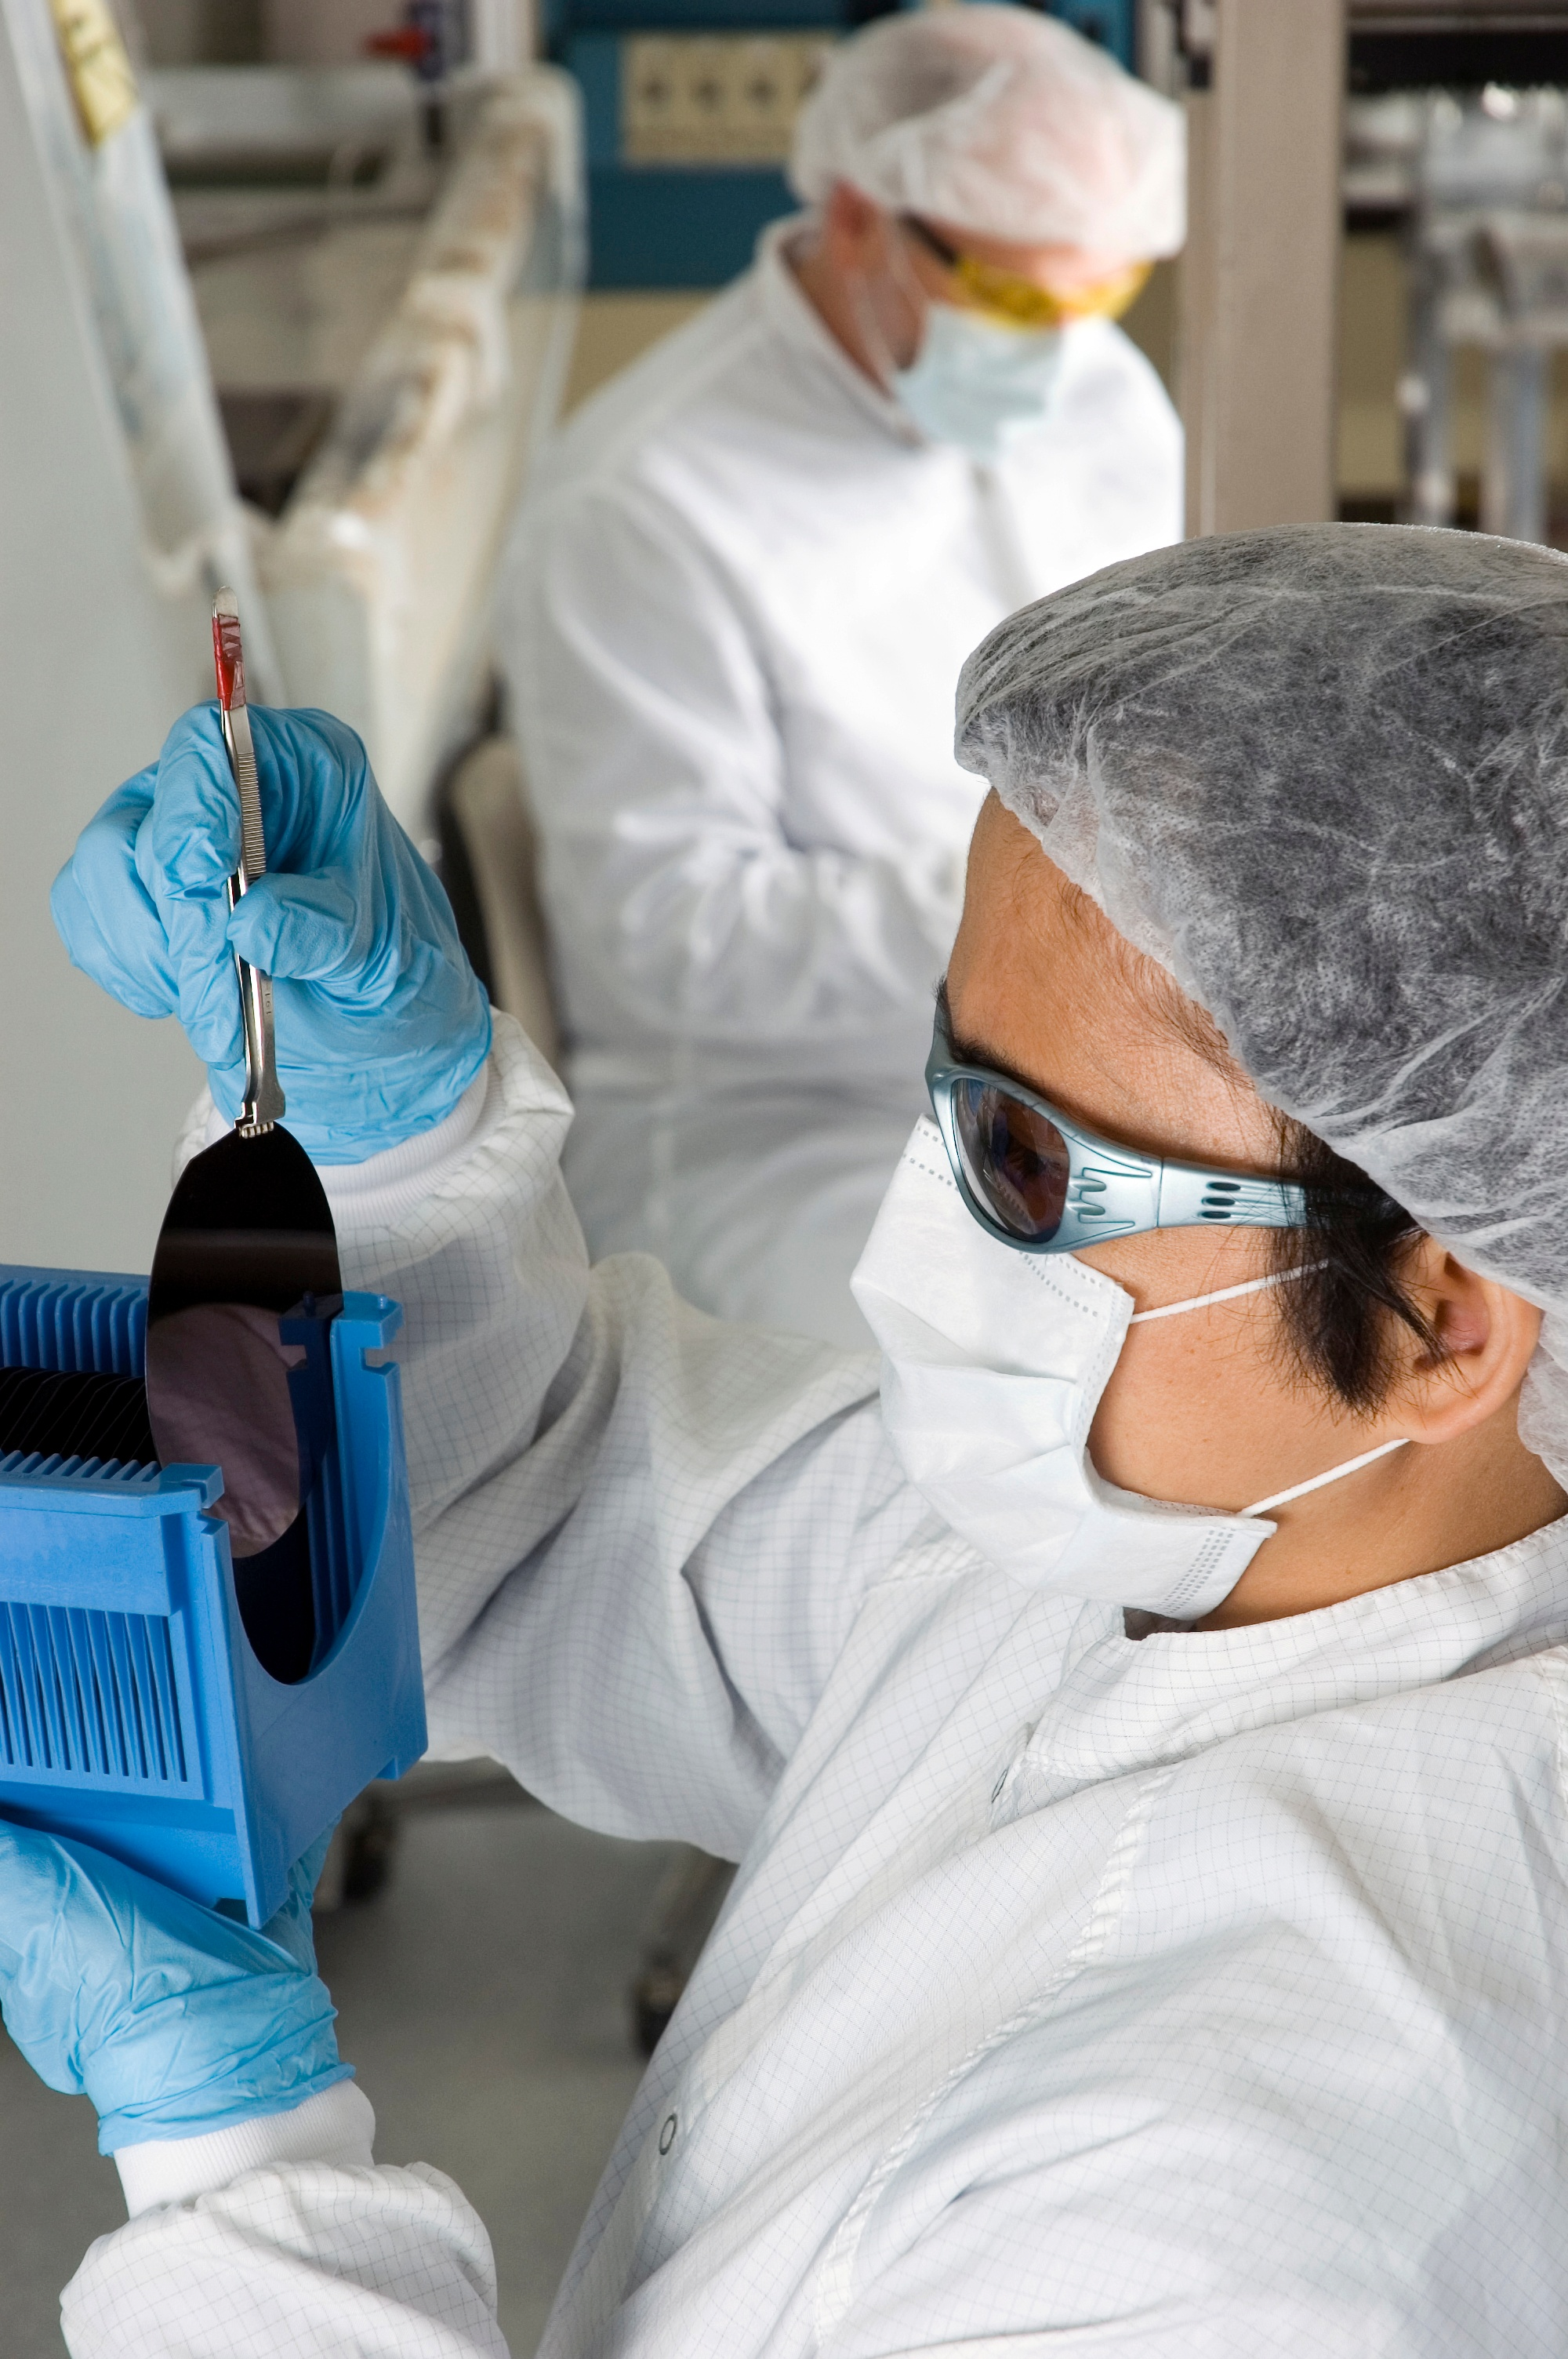 Lab-Technician-Inspecting-a-Silicon-Wafer--Series-000002529634_Large.jpg